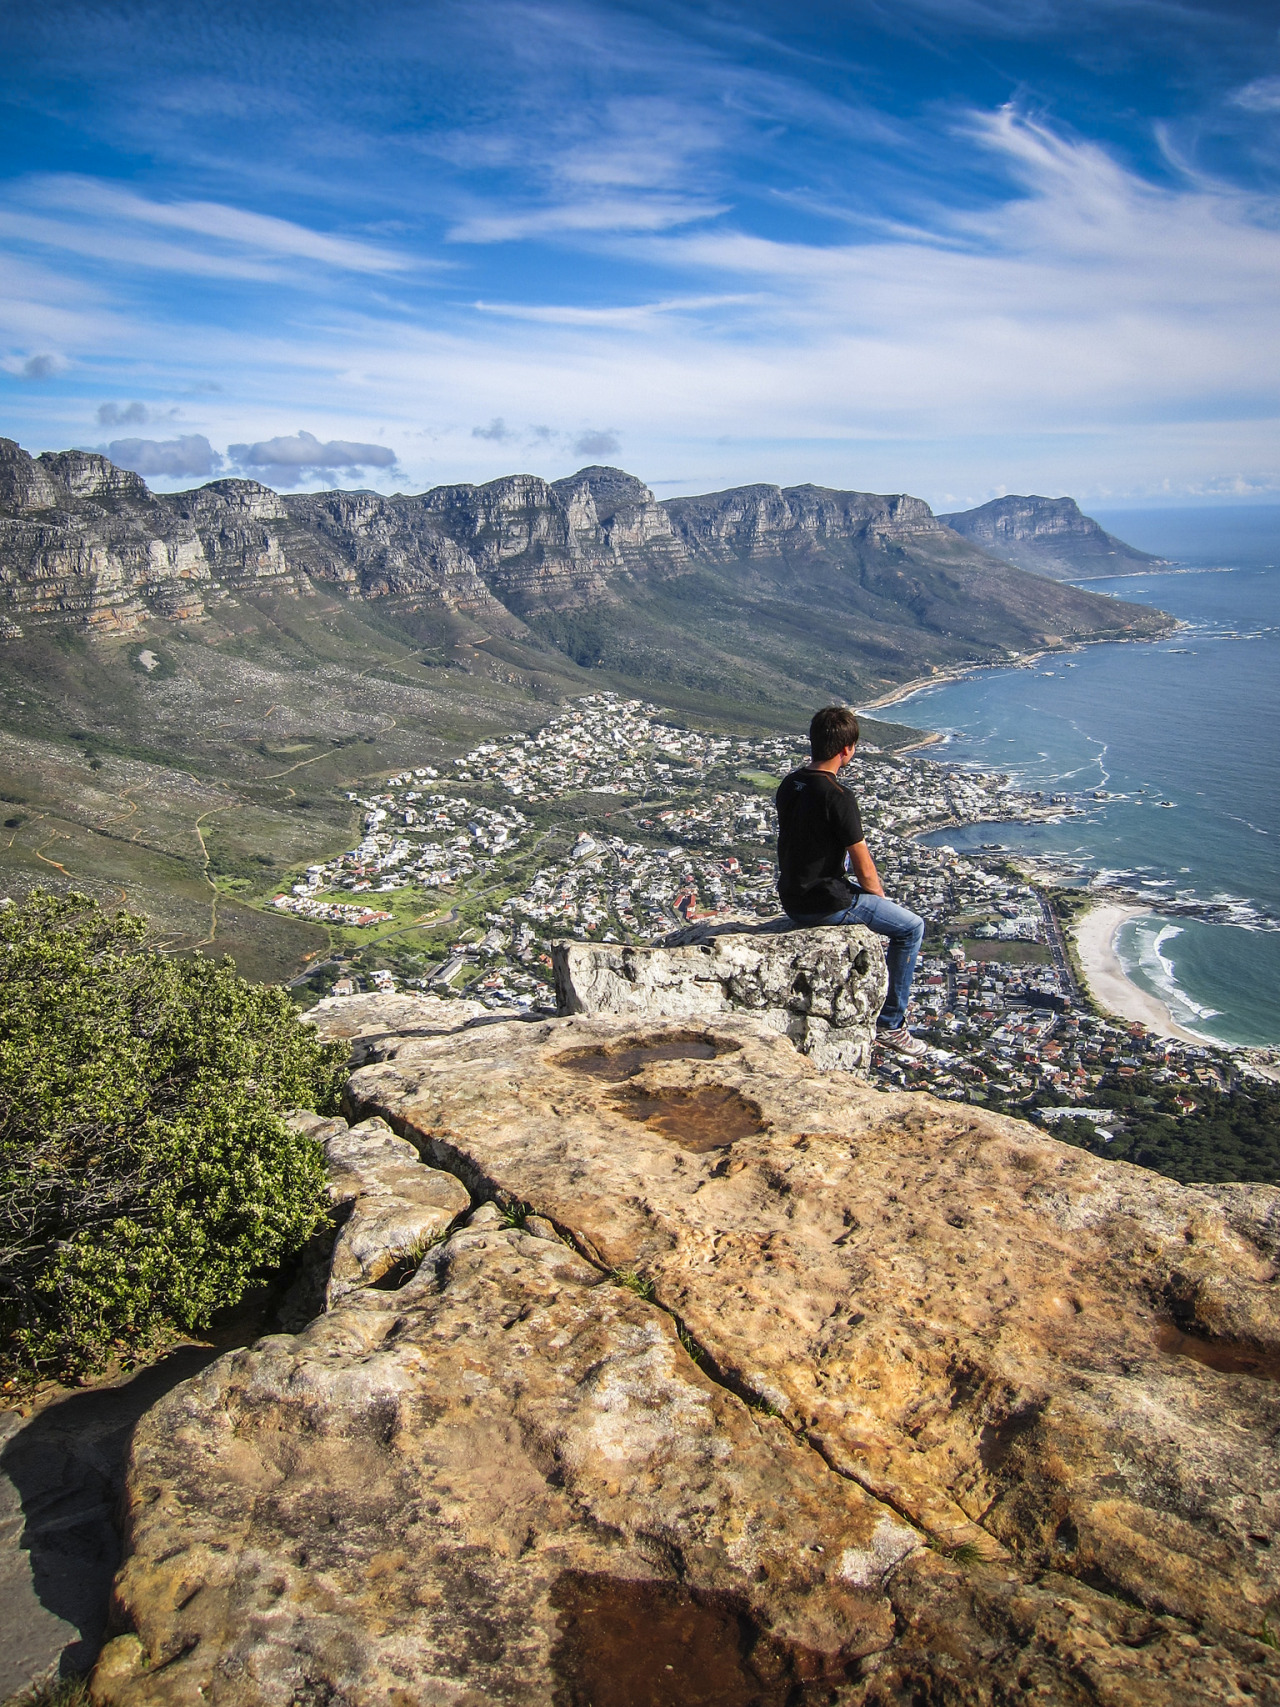 Enjoying the view, Cape Town / South Africa